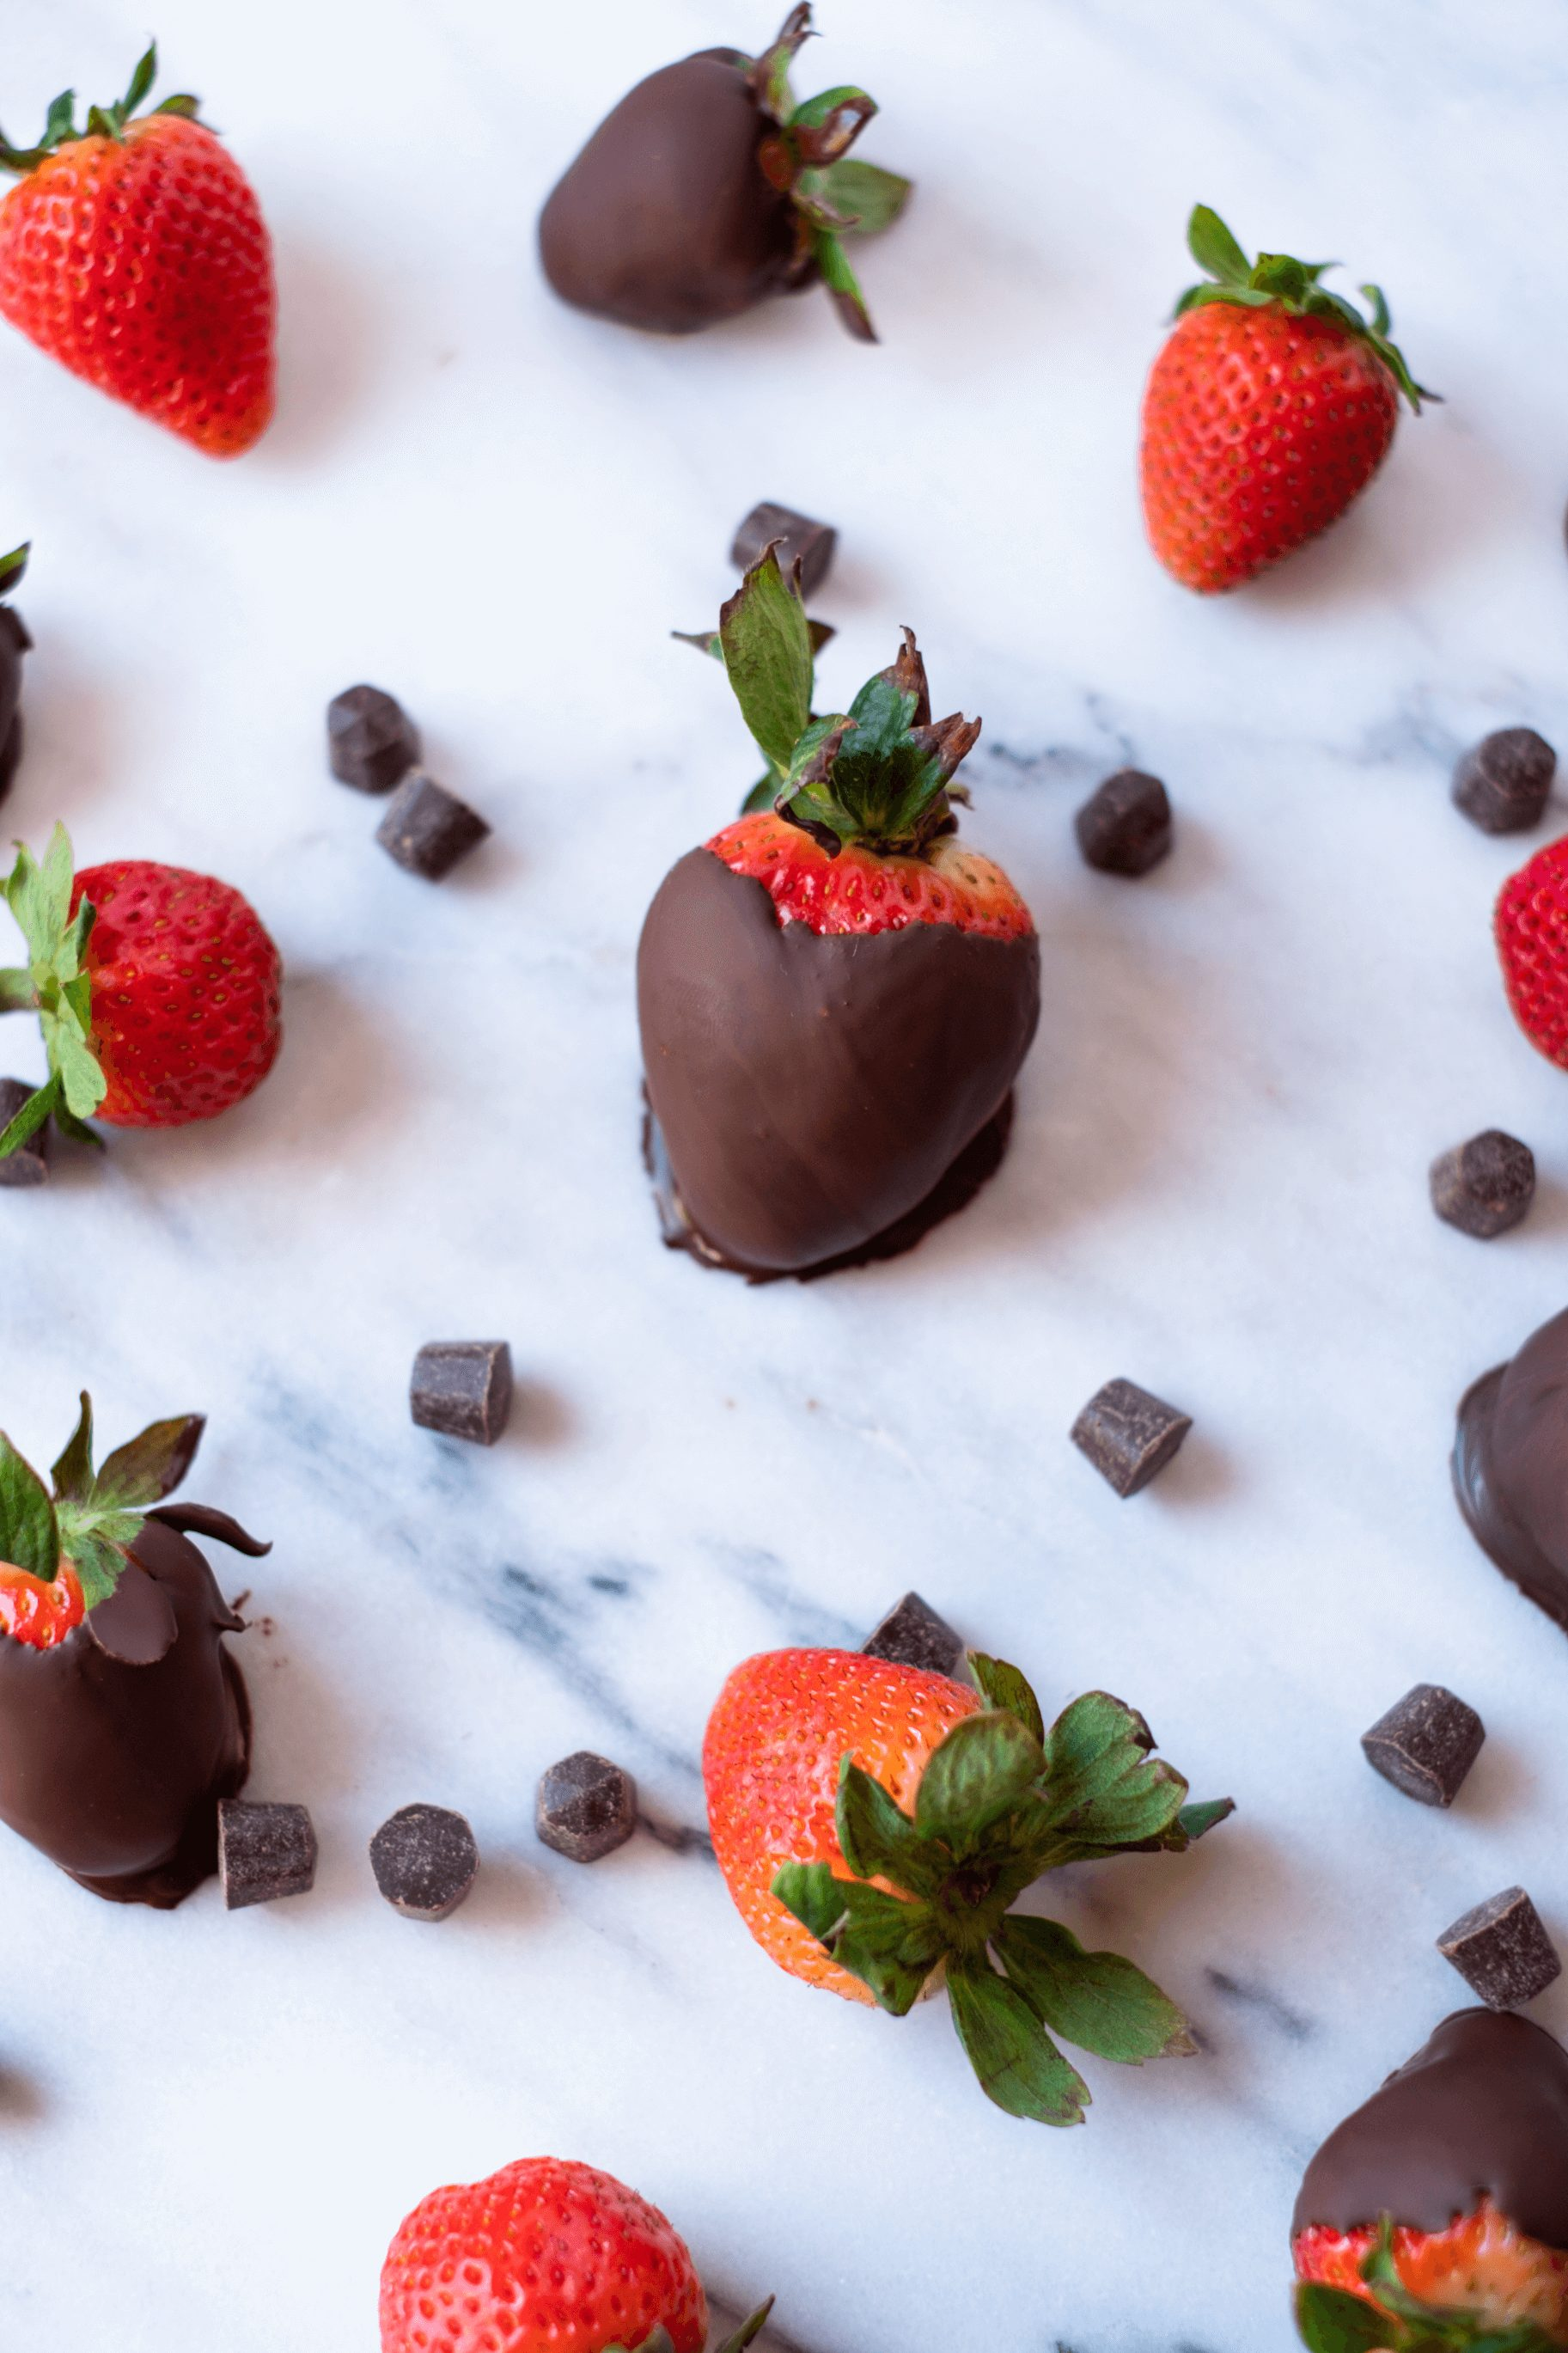 Rose Chocolate Covered Strawberries - The easiest valentine's day recipe featuring rose wine and paleo chocolate!